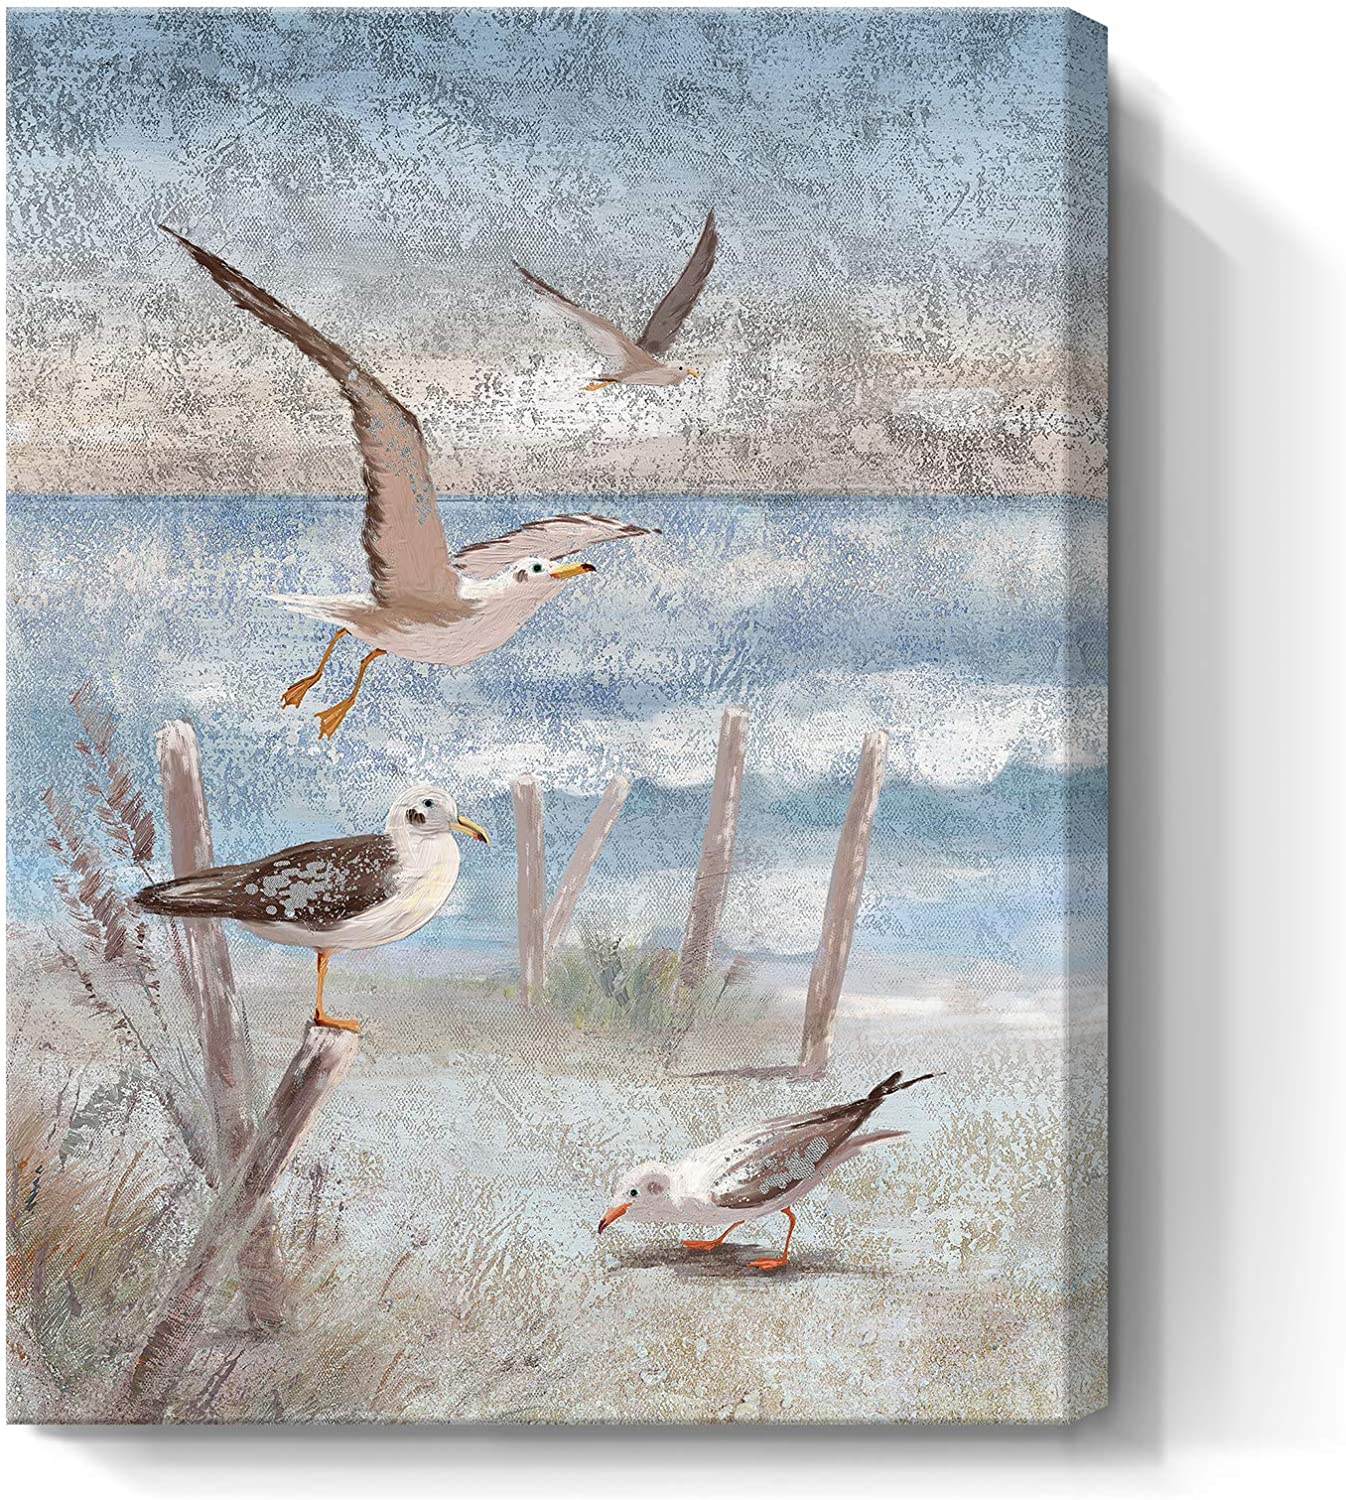 Beach Wall Art Bathroom Decor Ocean Theme Canvas Print Coastal Painting Perching Bird by The Sea Shore Abstract Seascape Picture Framed Artwork for Bedroom Living Room Office Ready to Hang 12x16inch